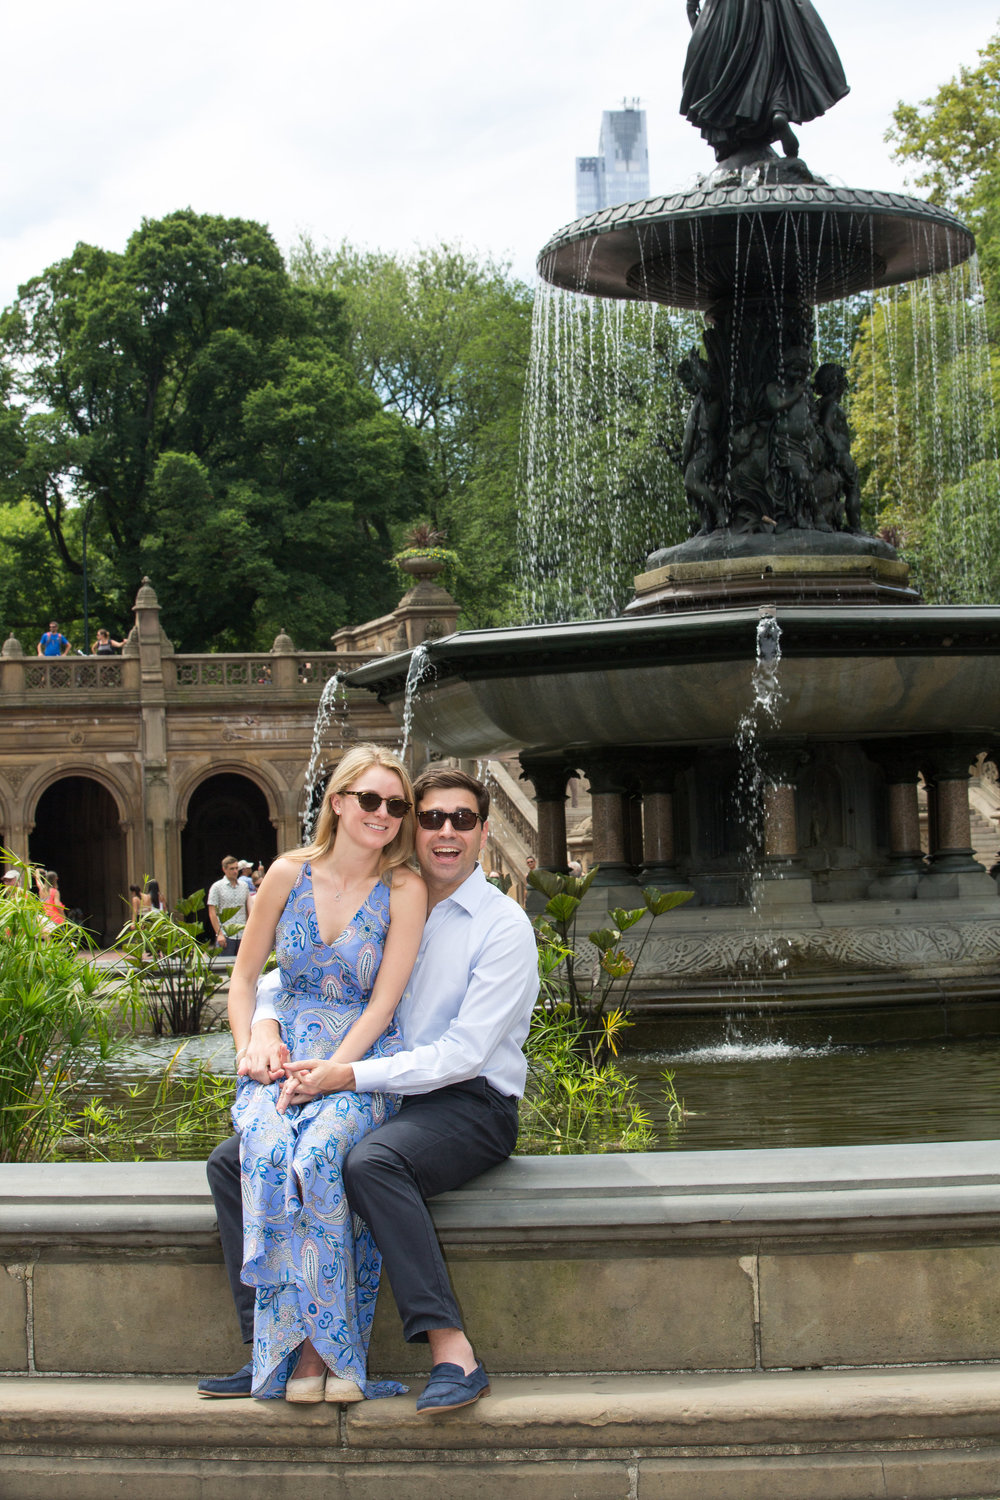 engagement-shoot-central-park-nyc-167.jpg